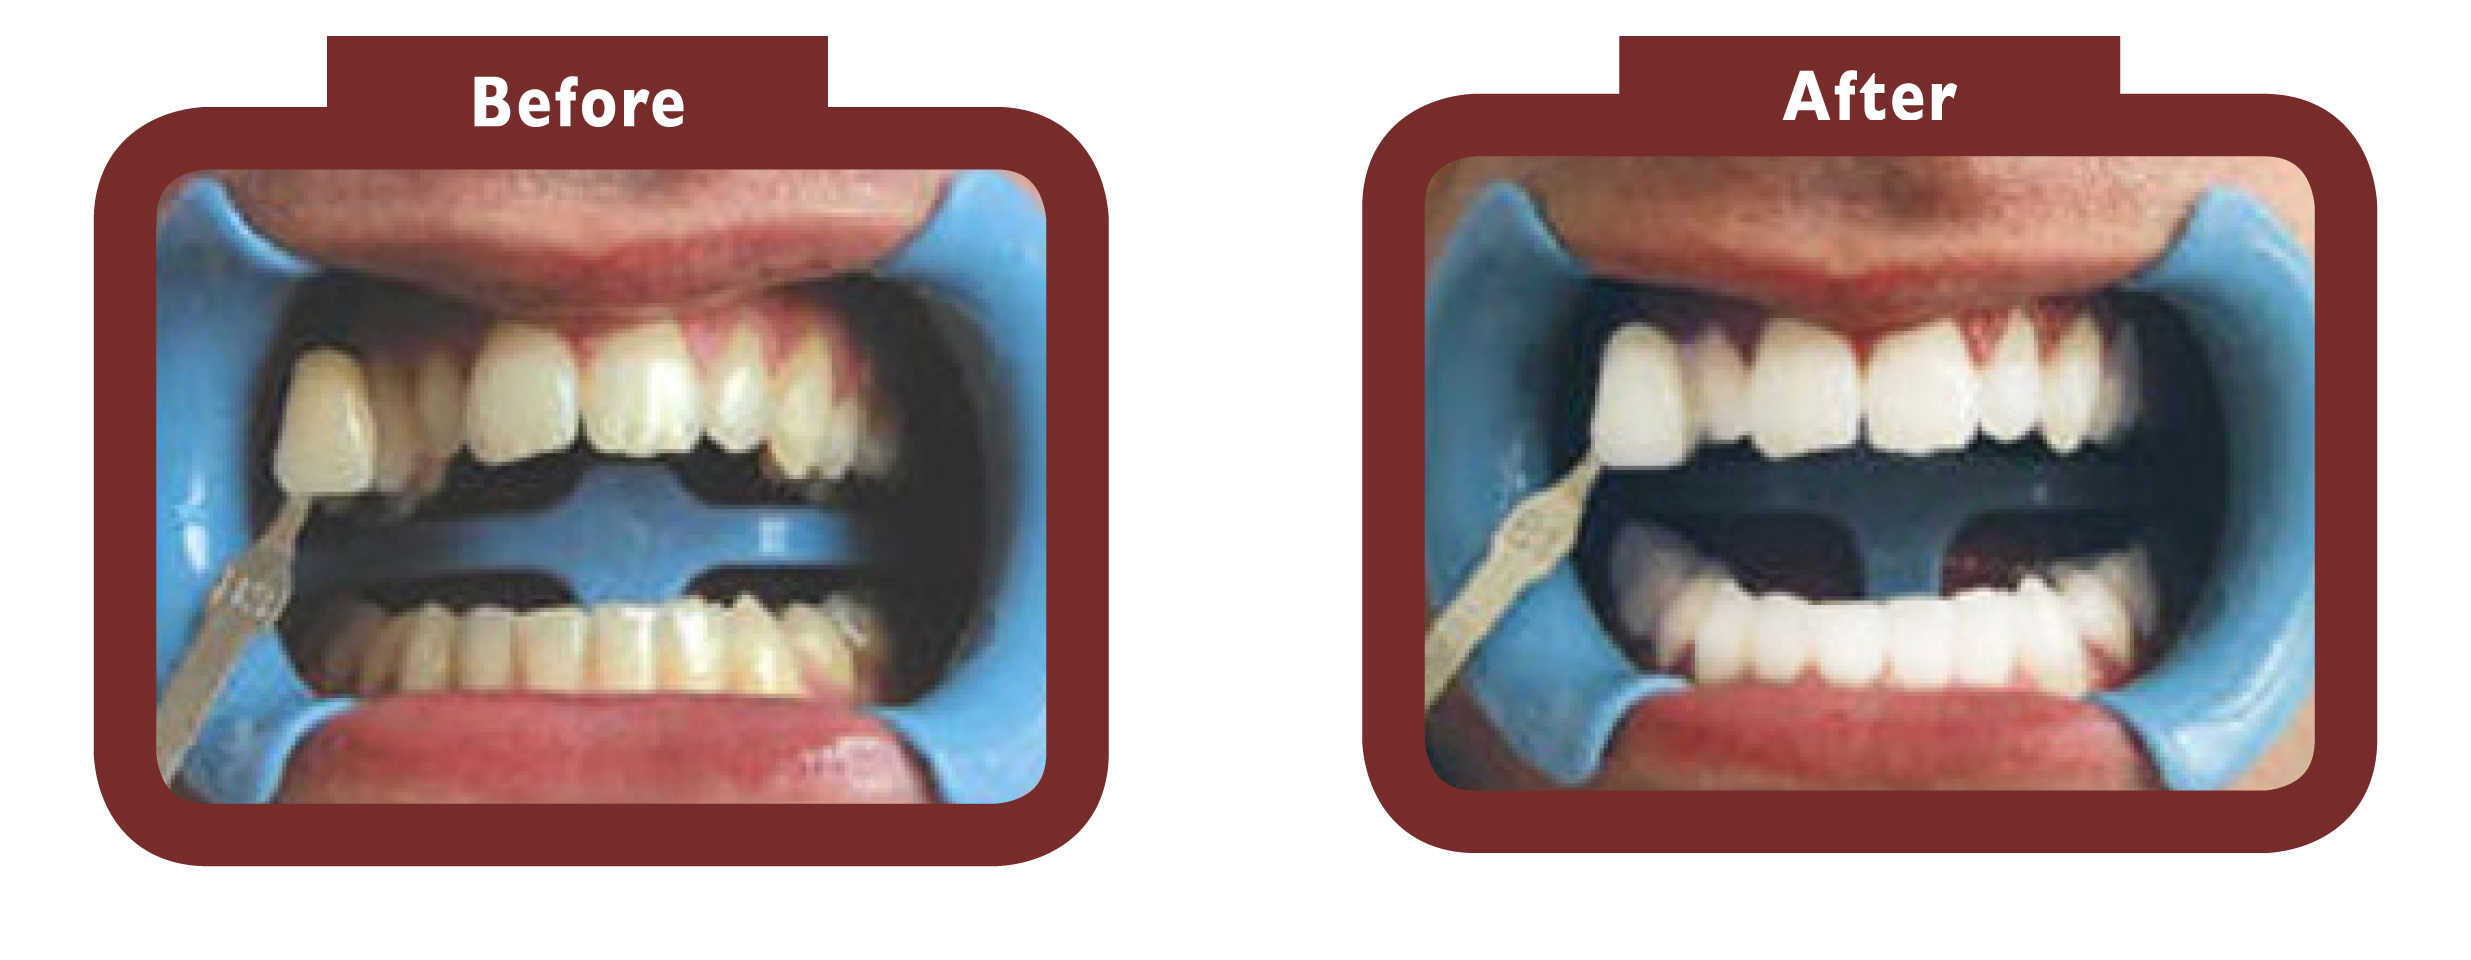 before and after teeth whitening - LA TEETH